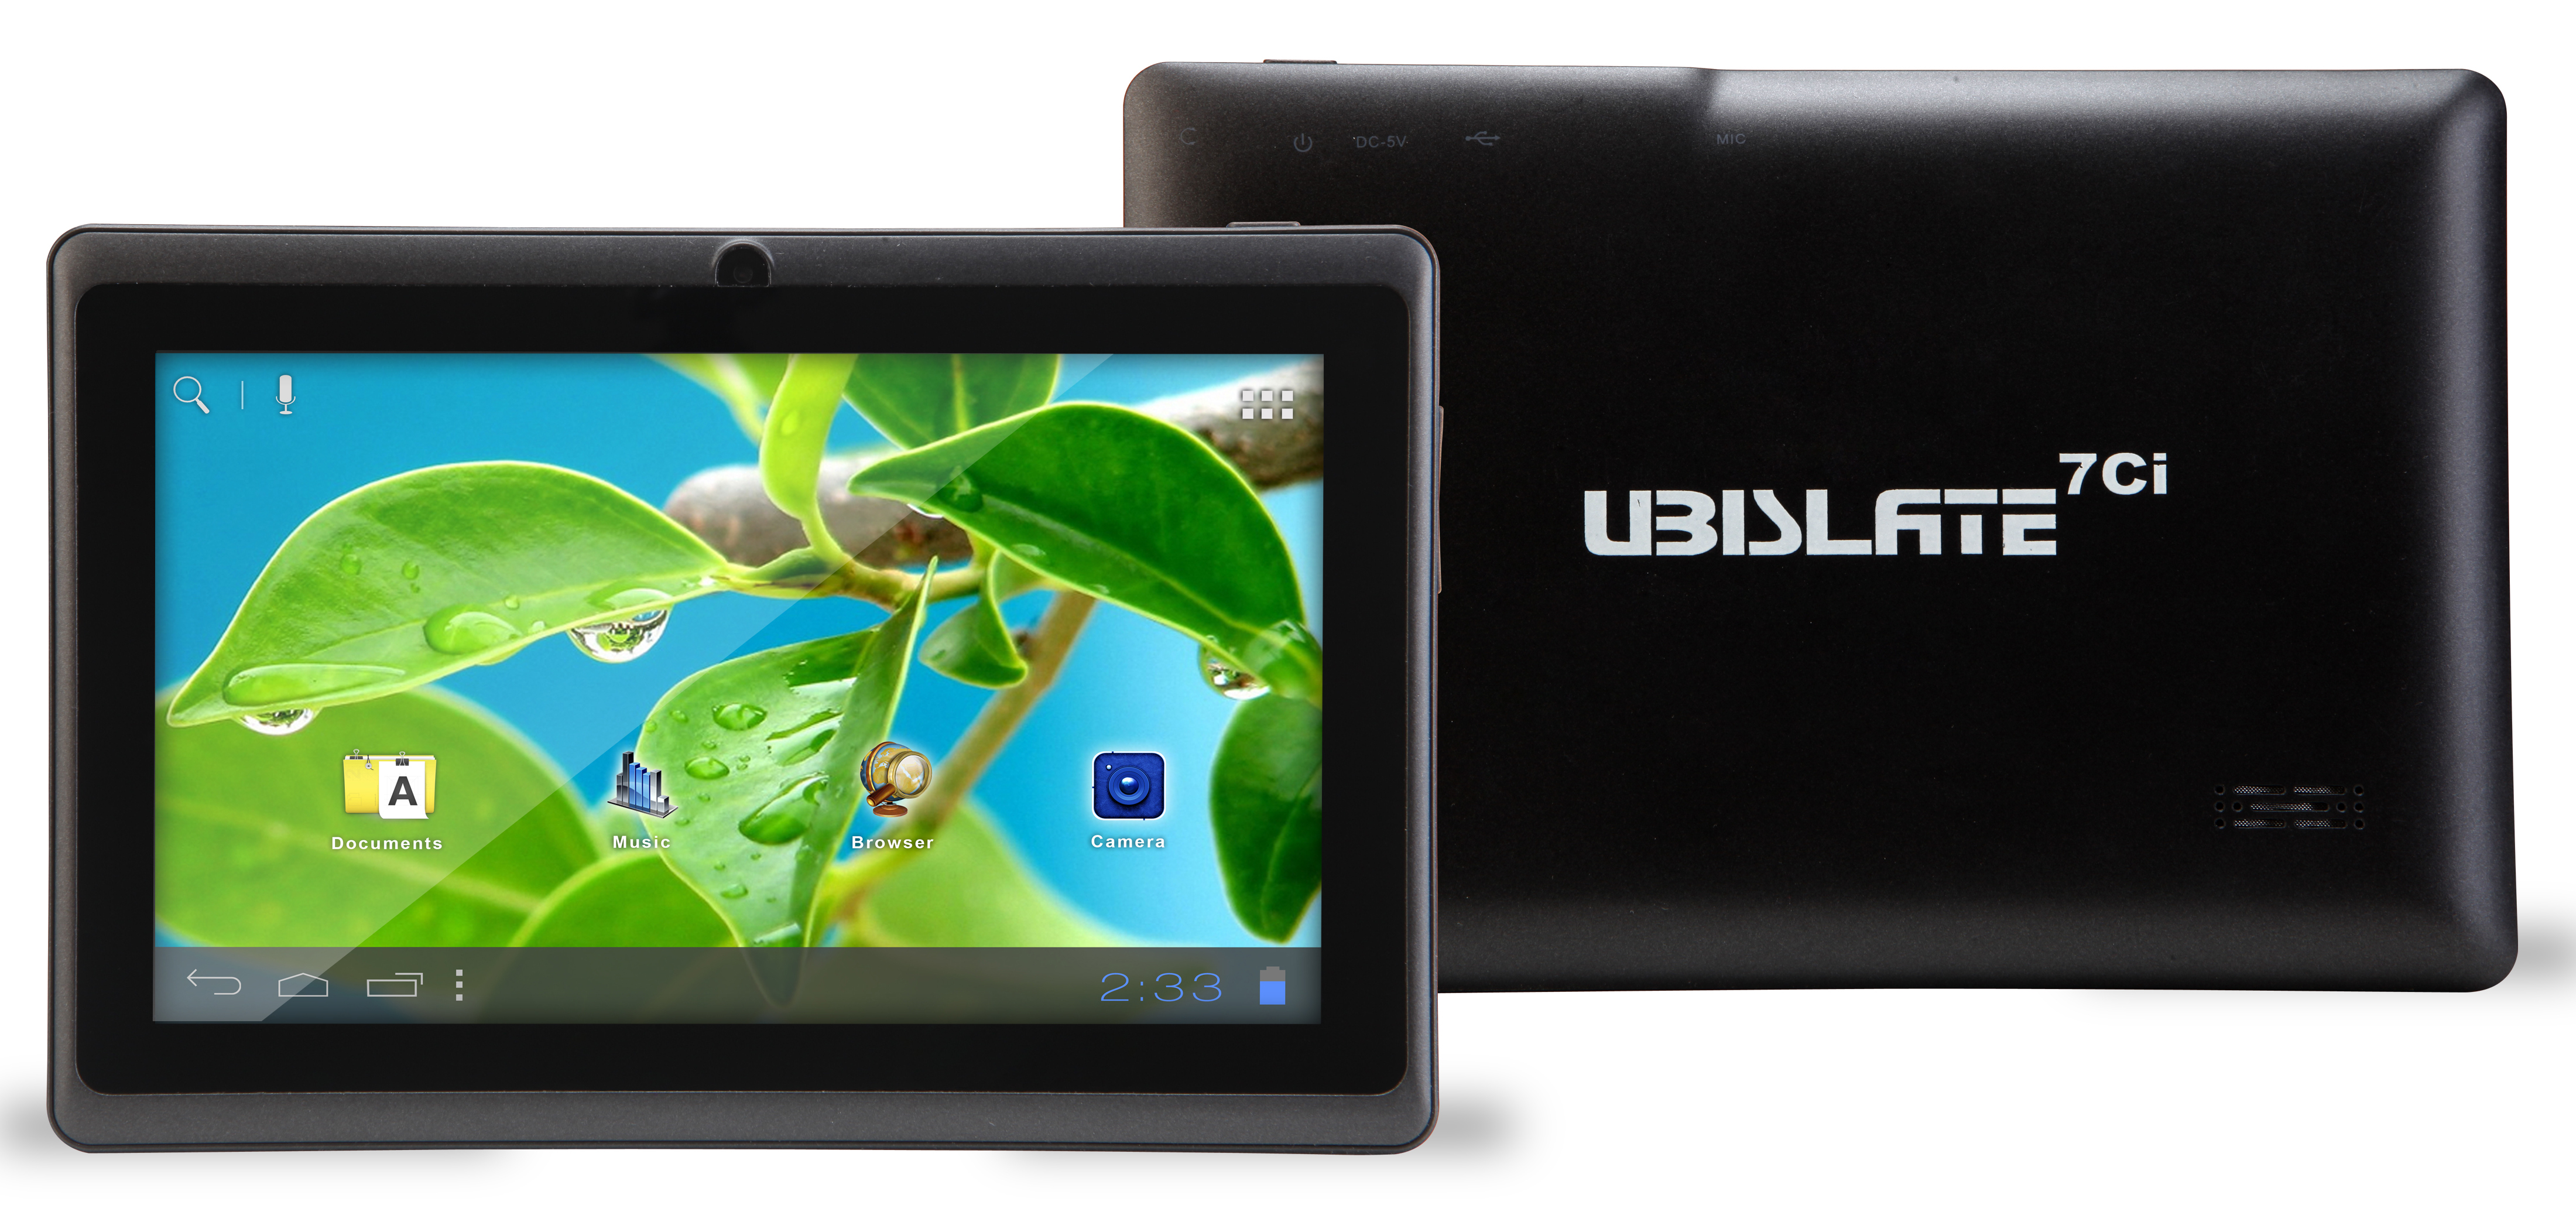 DataWind's $38 Tablet Is Turning the World Upside Down